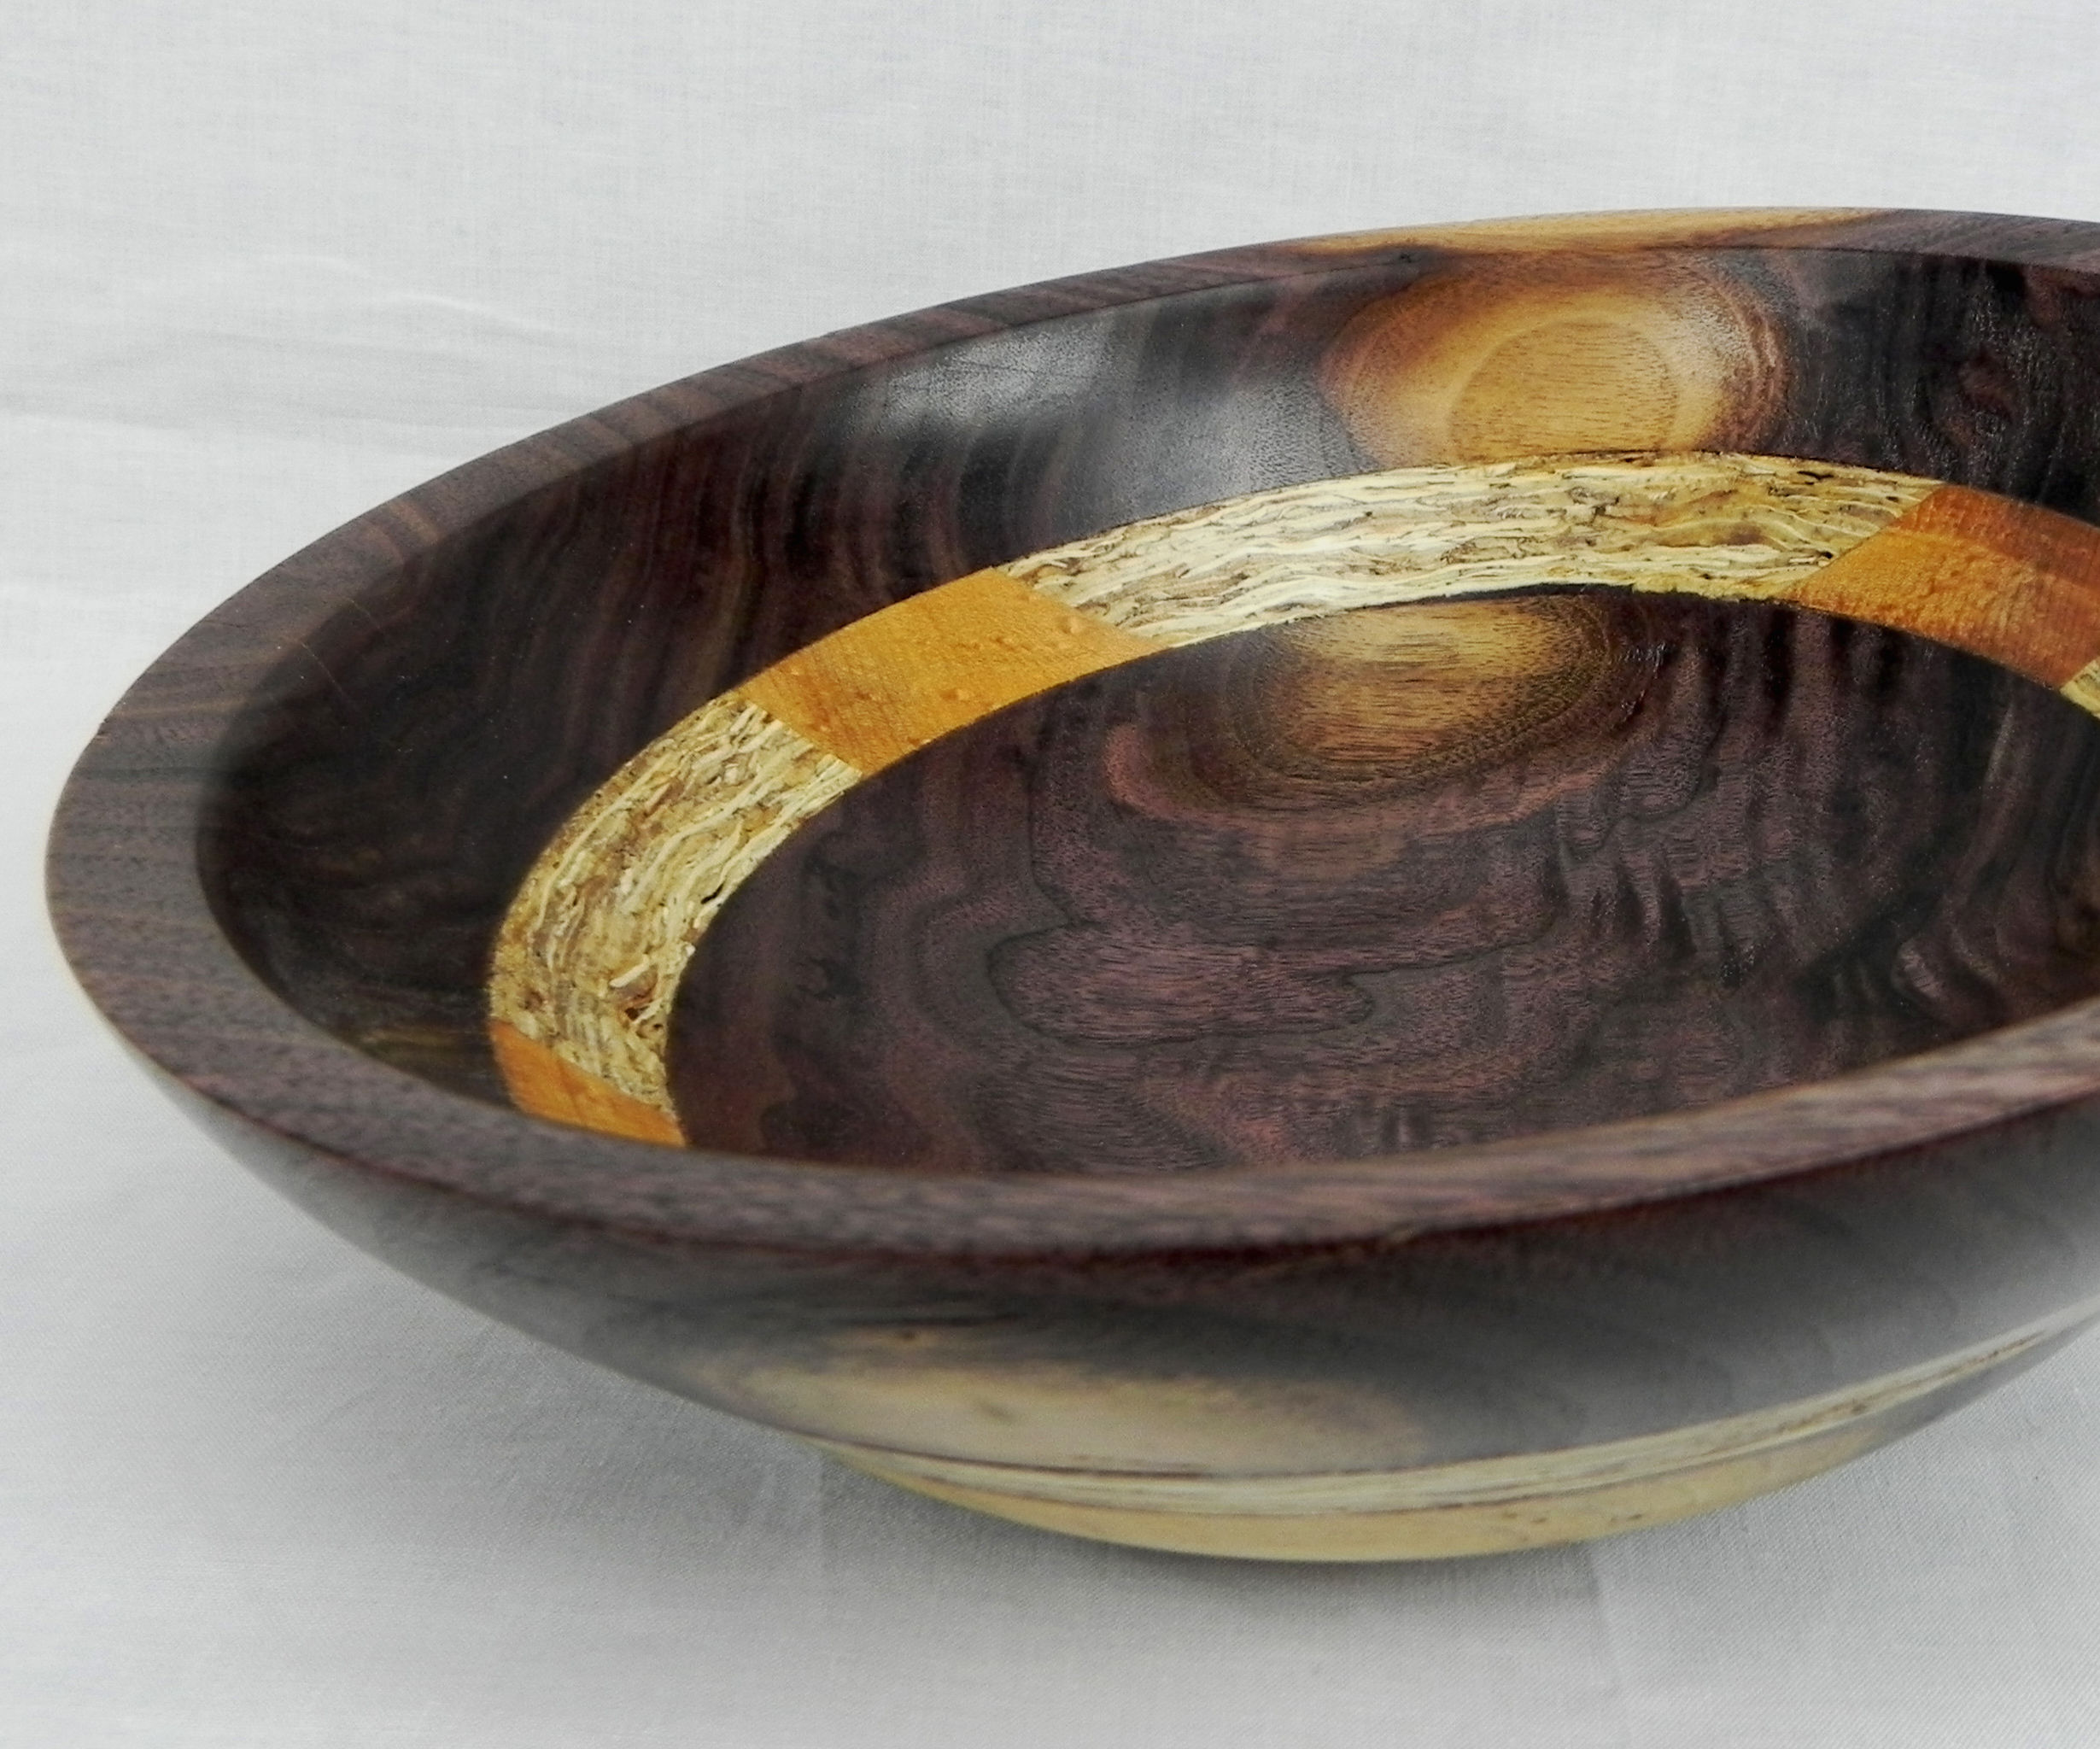 Laminated reclaimed wooden bowl